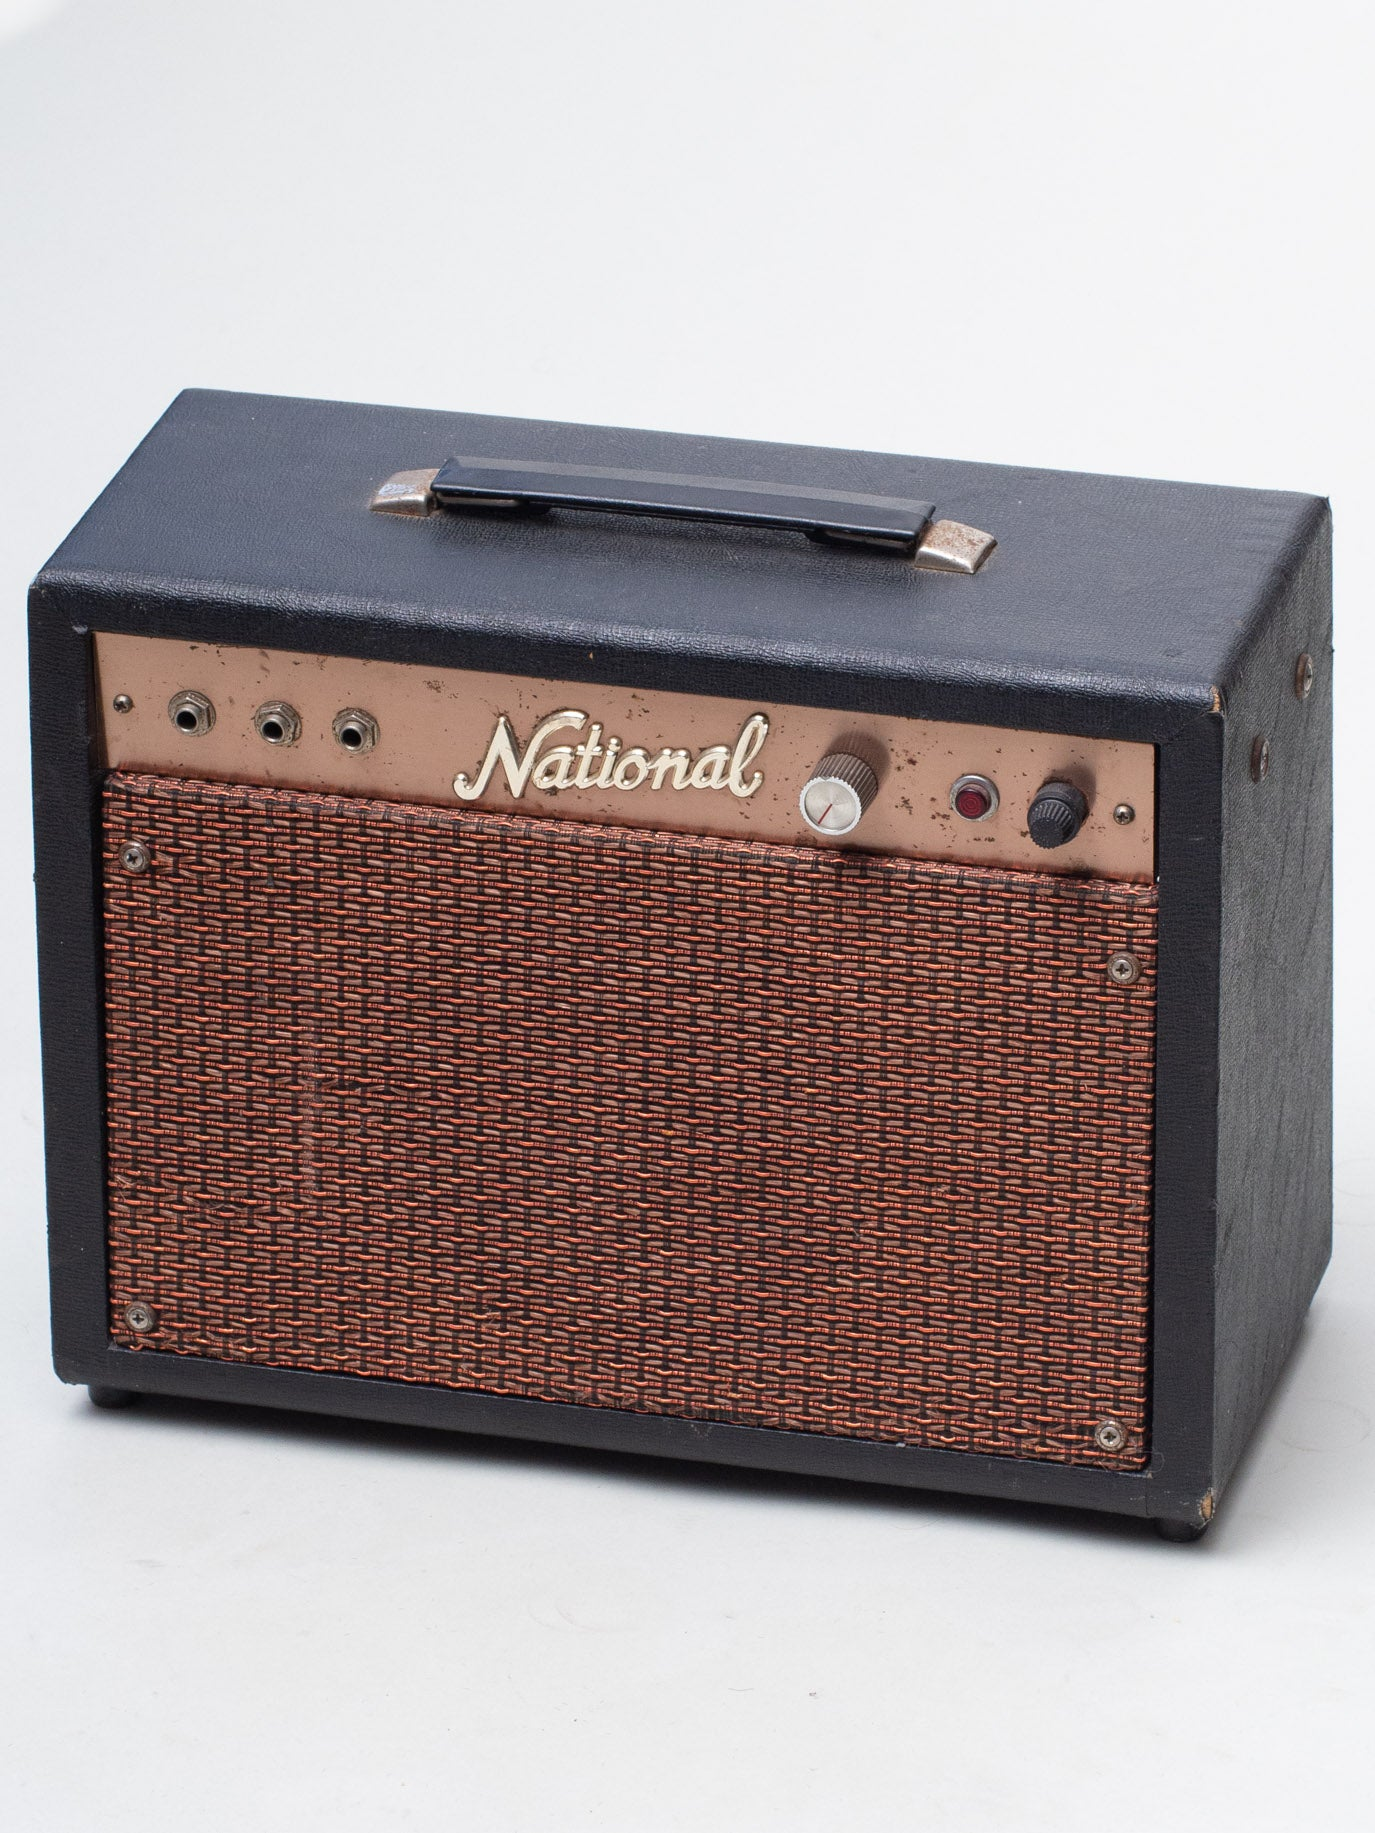 1967 National 1210